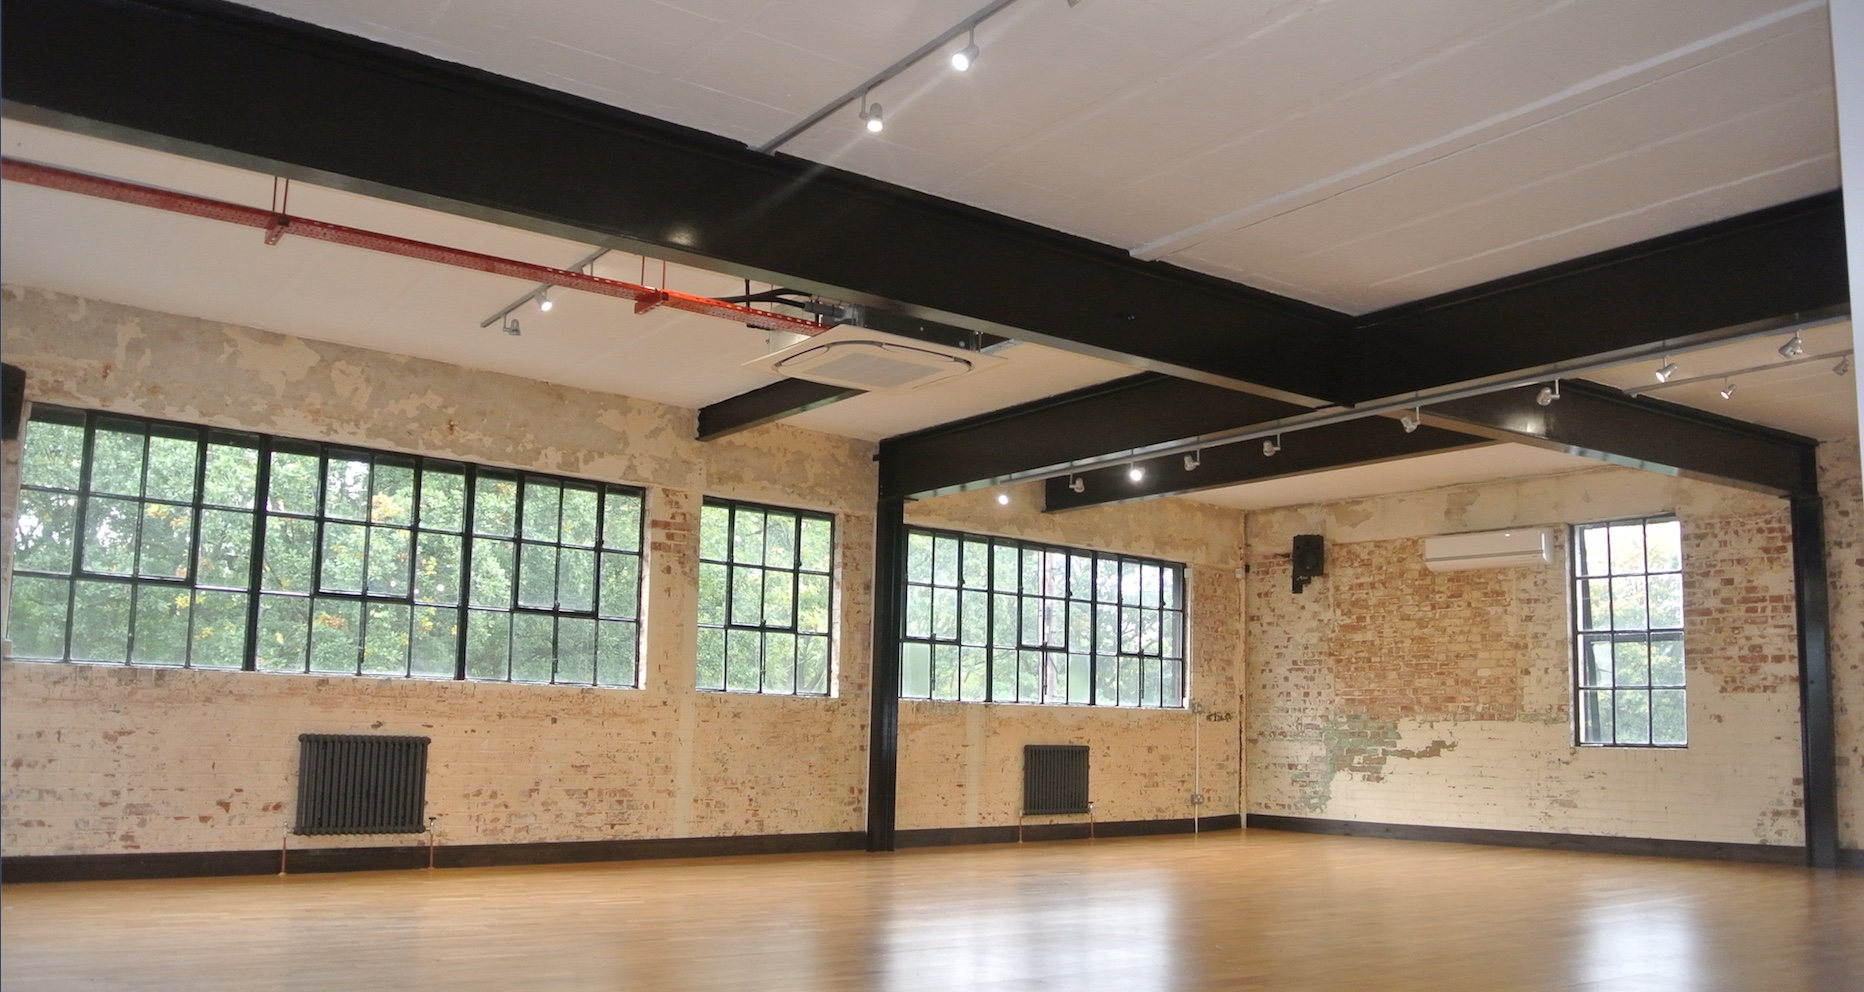 dance studio - studio 1 at studio 45